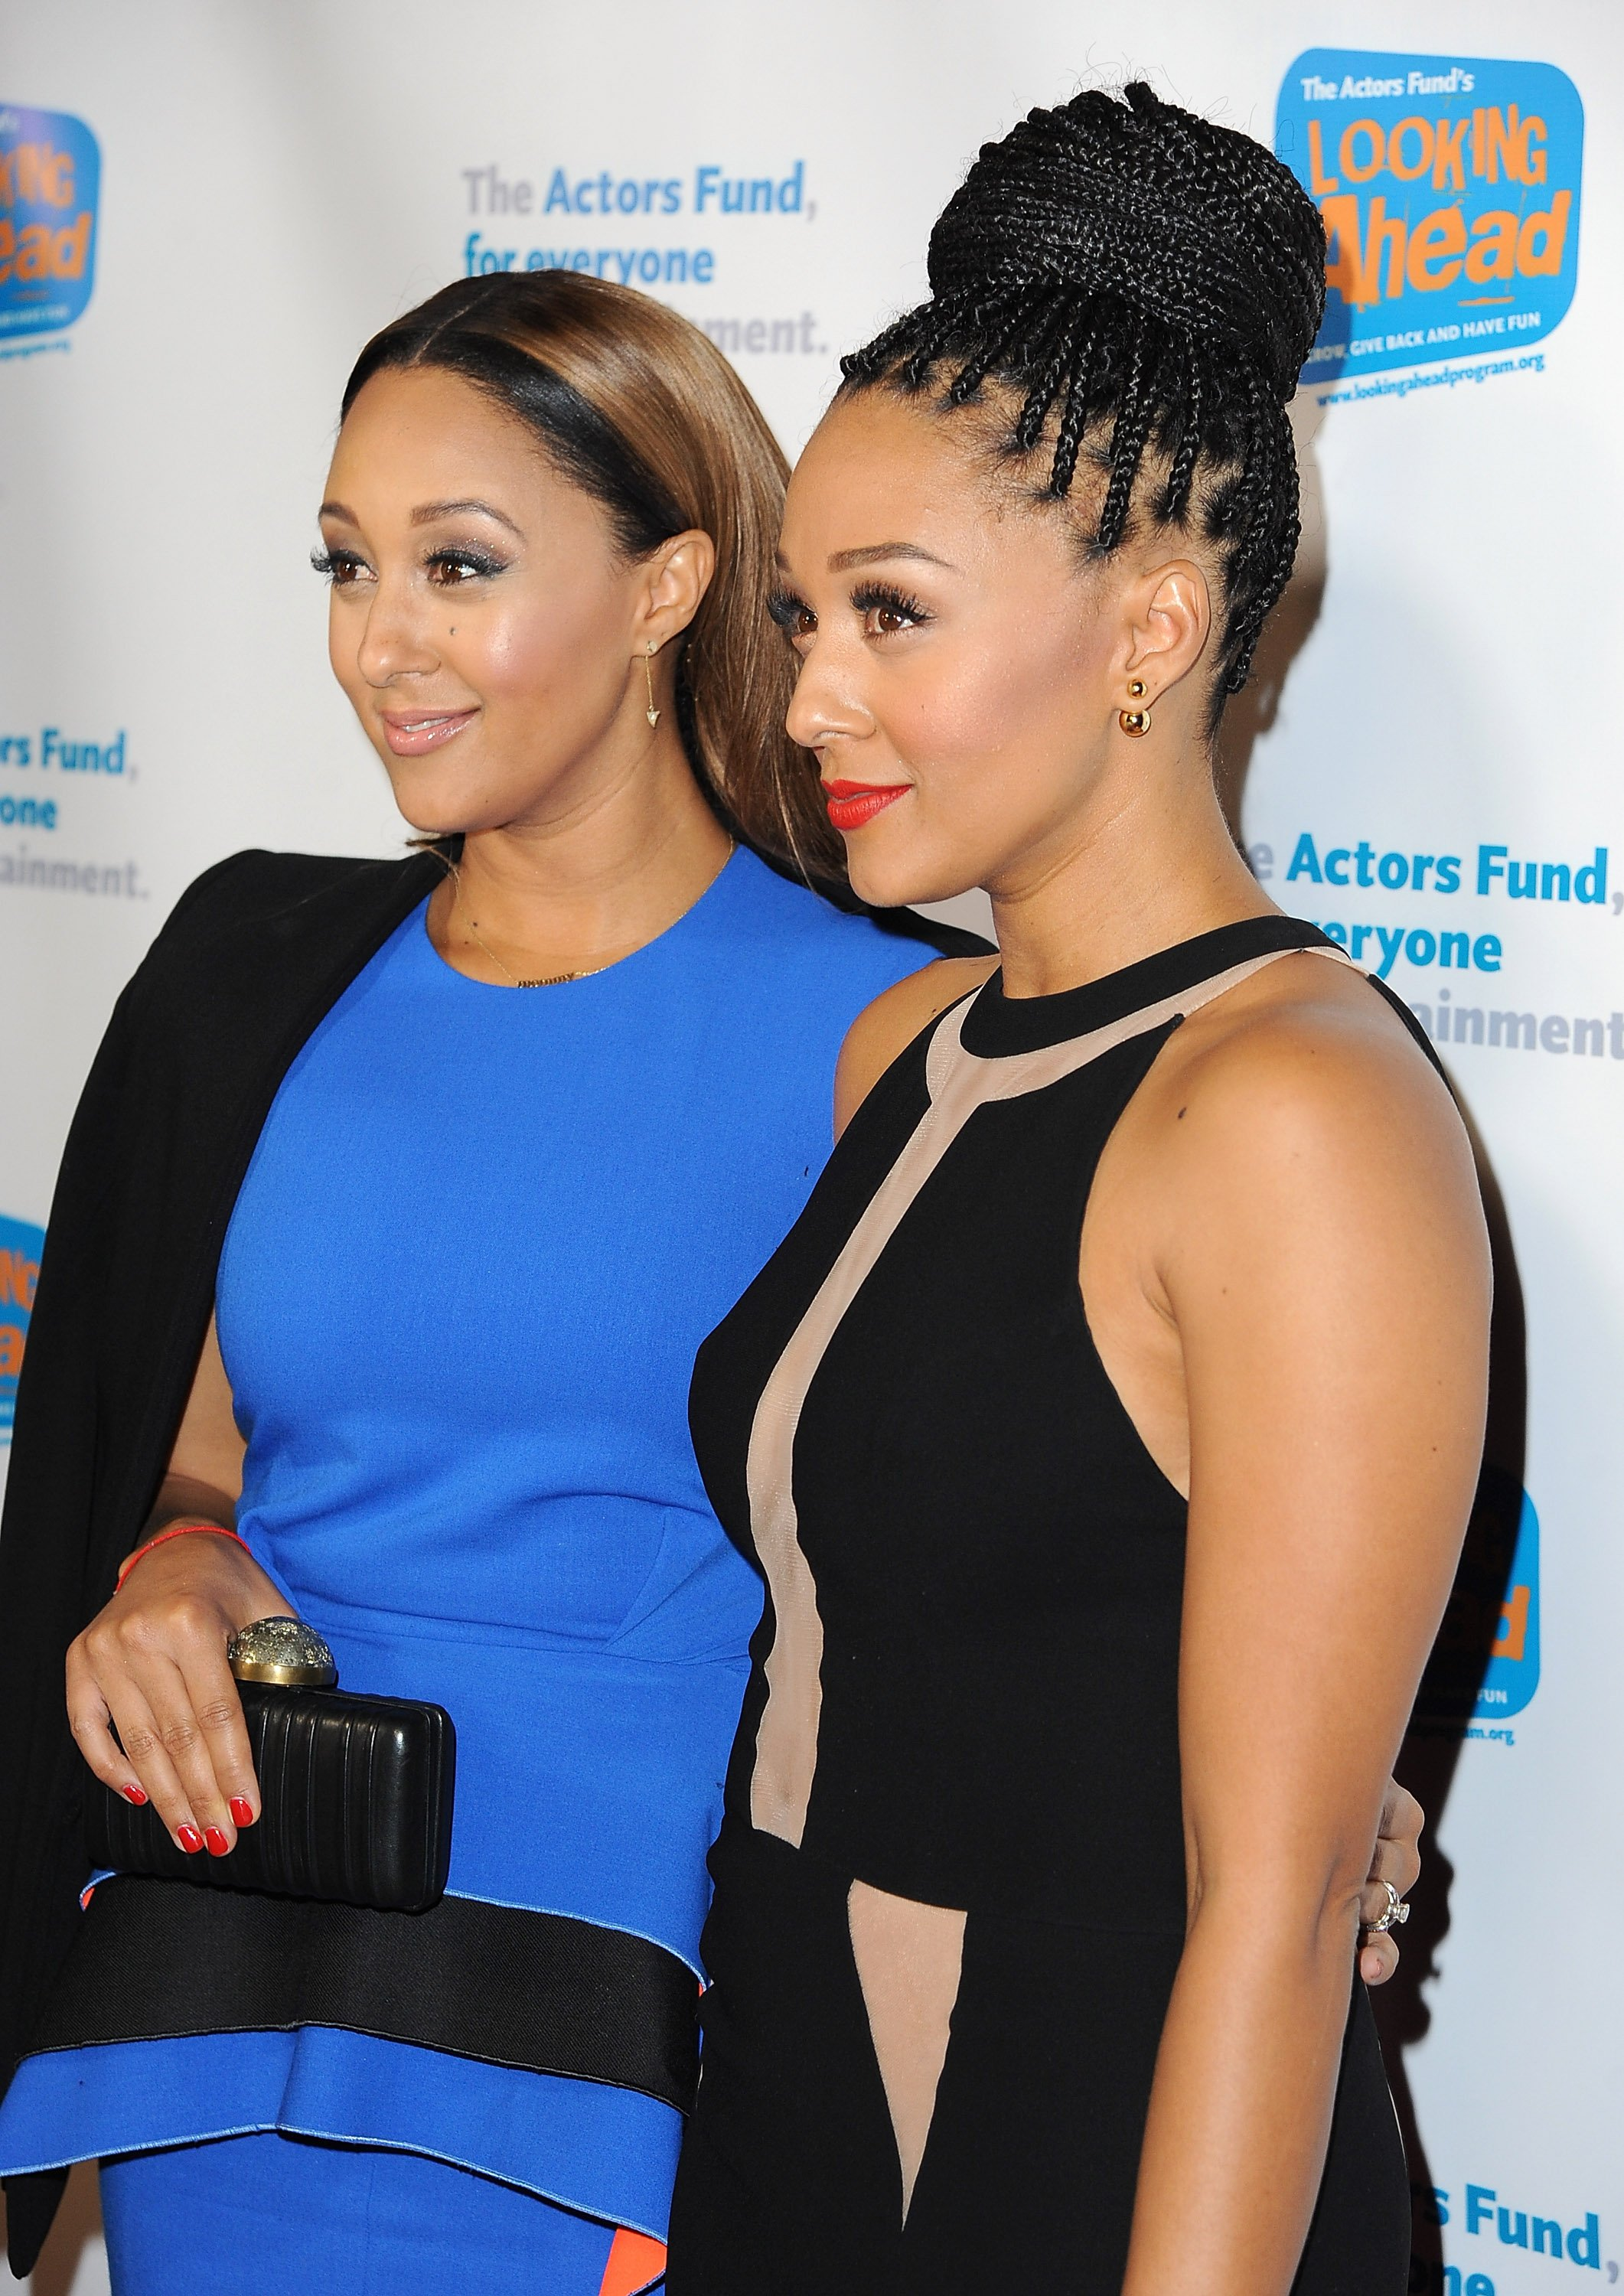 Tamera Mowry-Housley (L) & Tia Mowry-Hardrict at The Actor's Fund 2014 in Hollywood on Dec. 4, 2014. | Photo: Getty Images